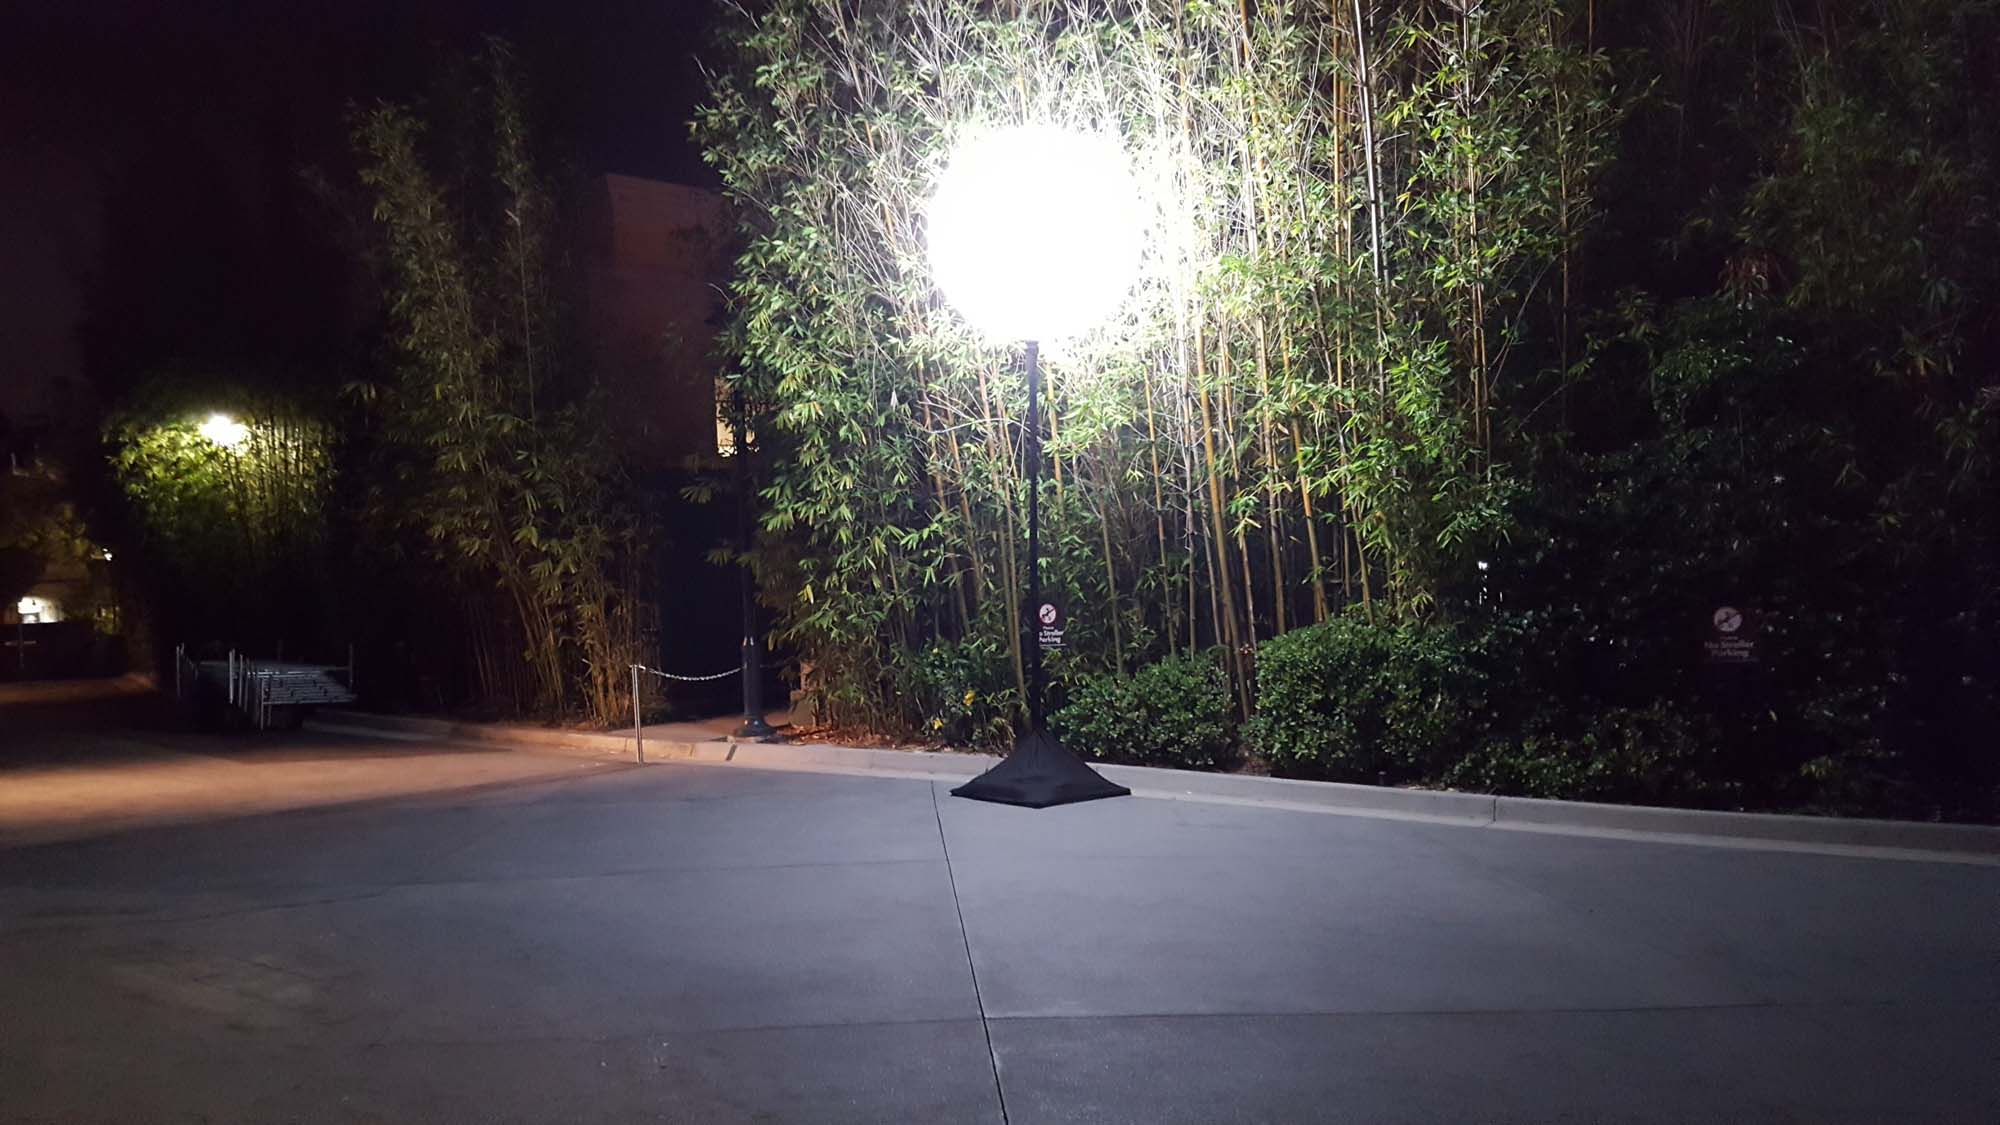 Sphere Hi-Light on a Design A Stand Out, Outside lighting up a Path